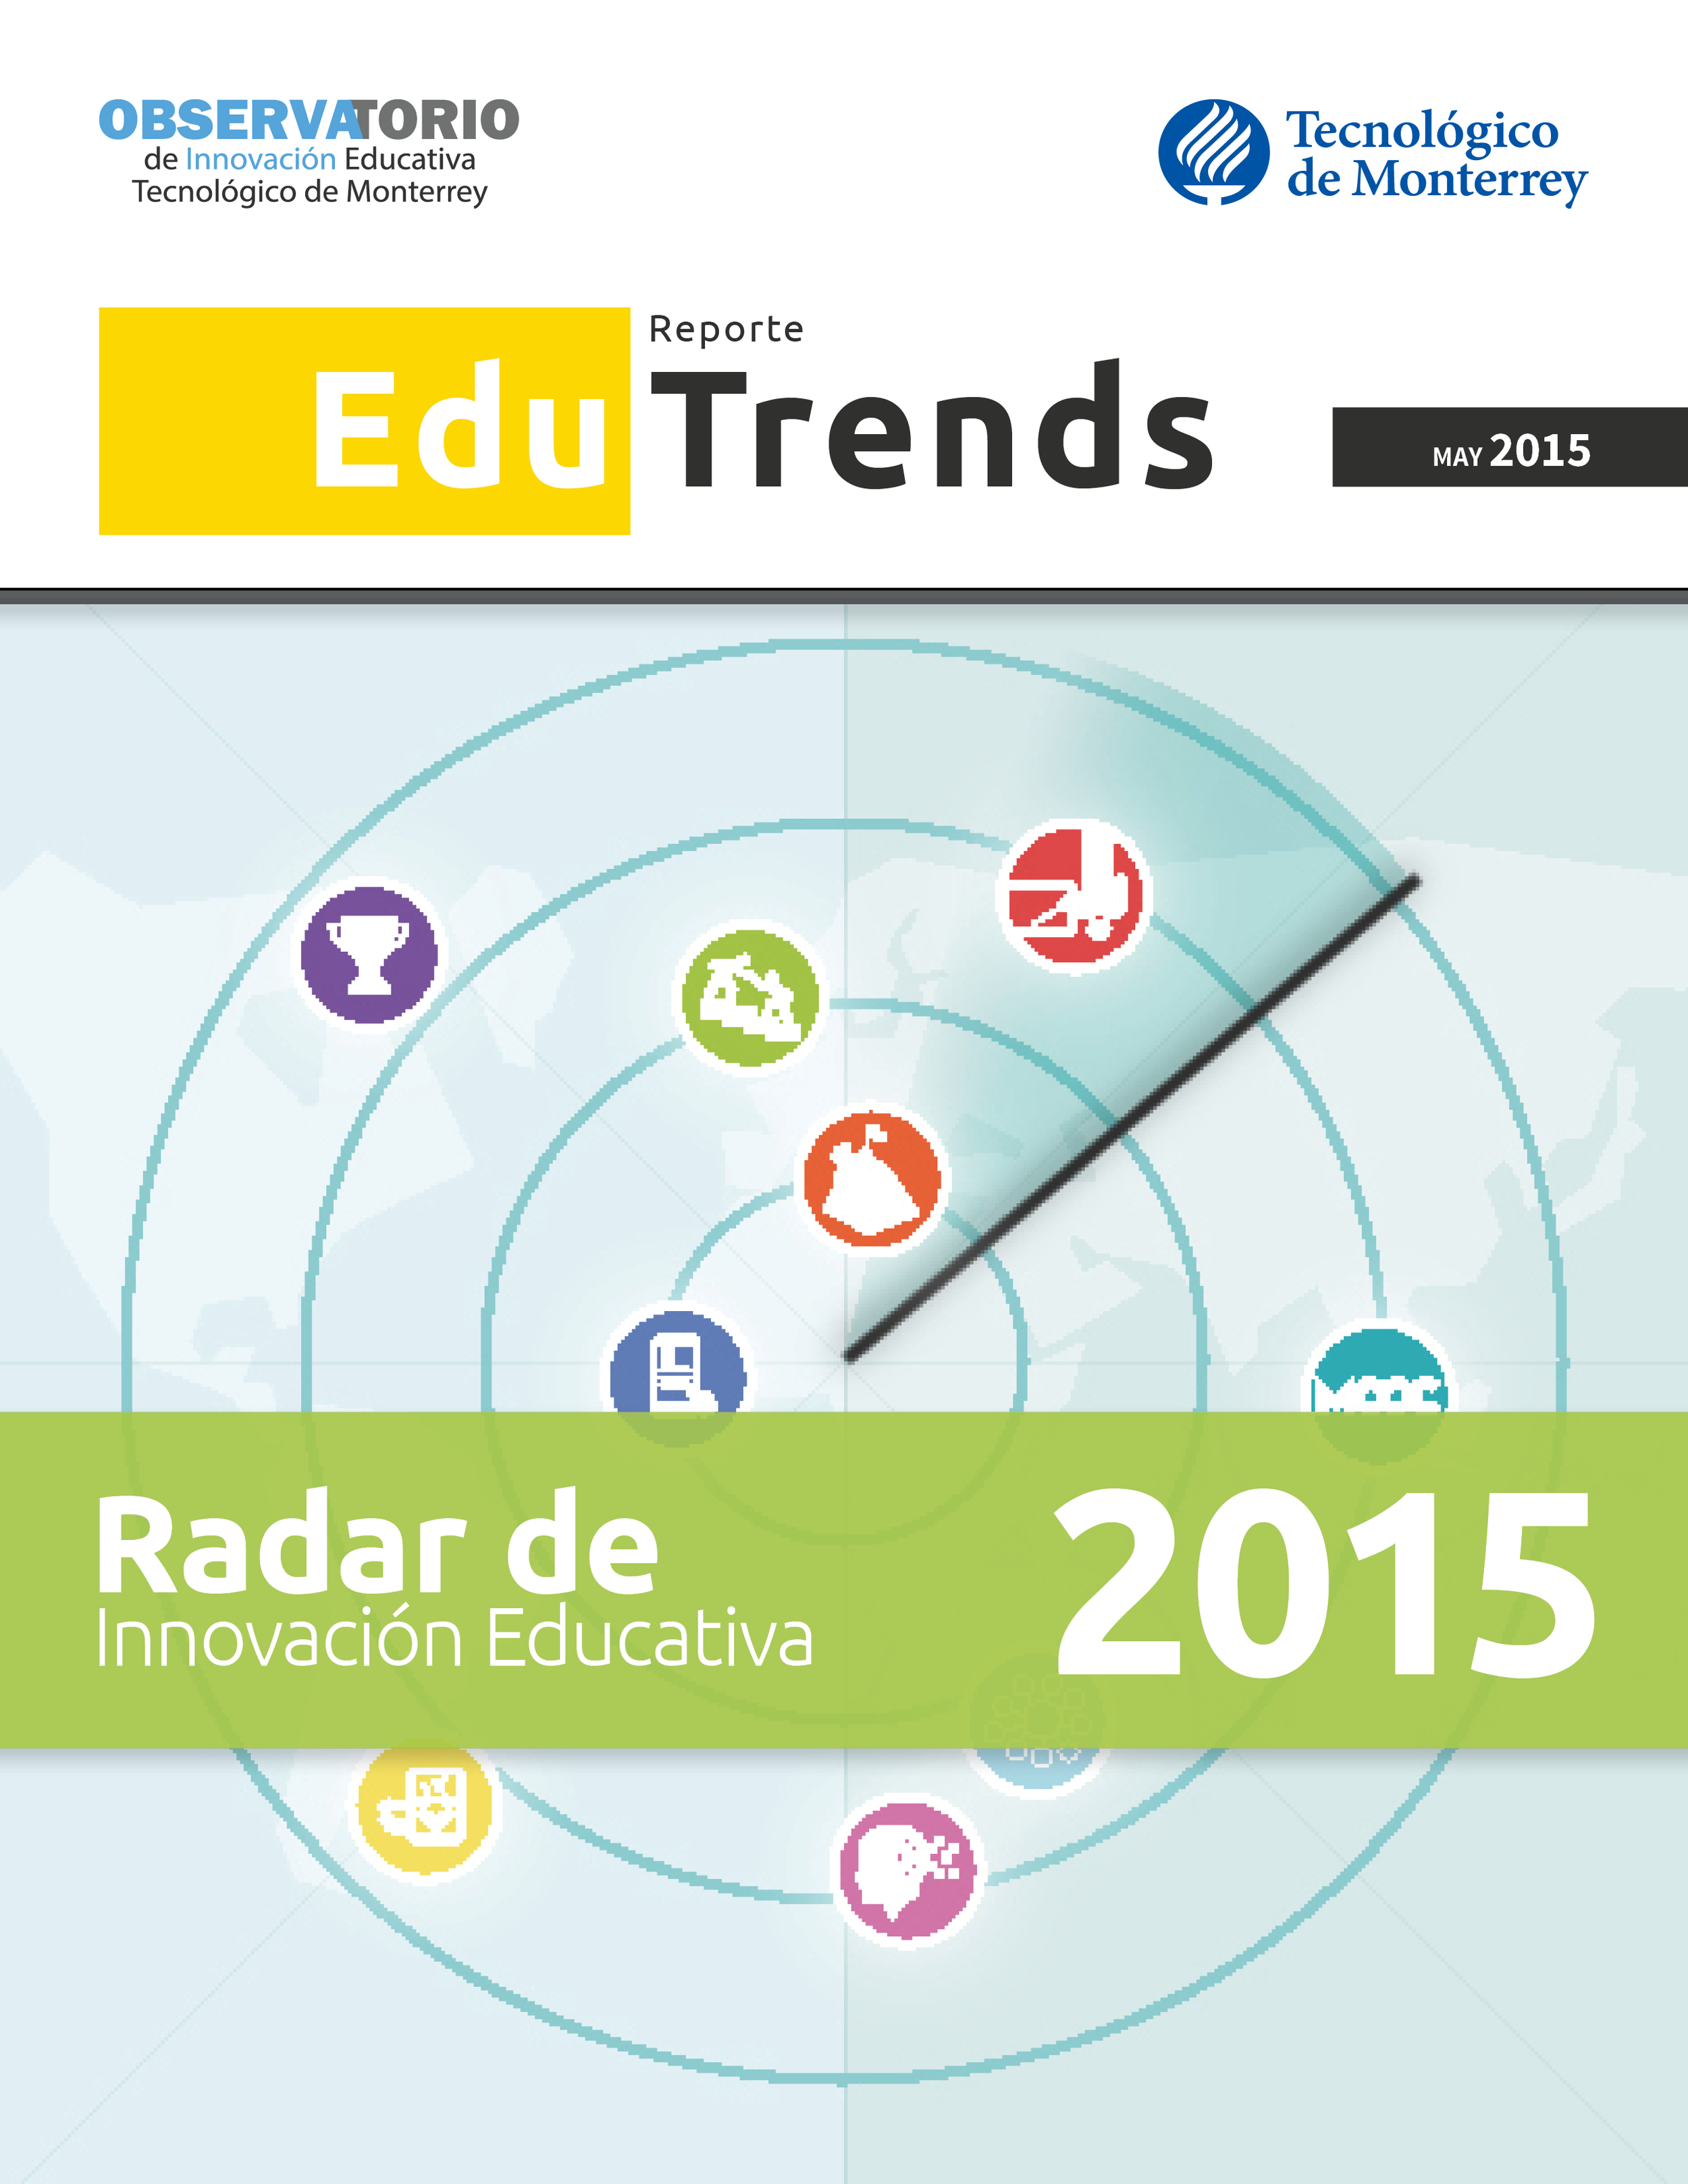 Radar de Innovación Educativa 2015